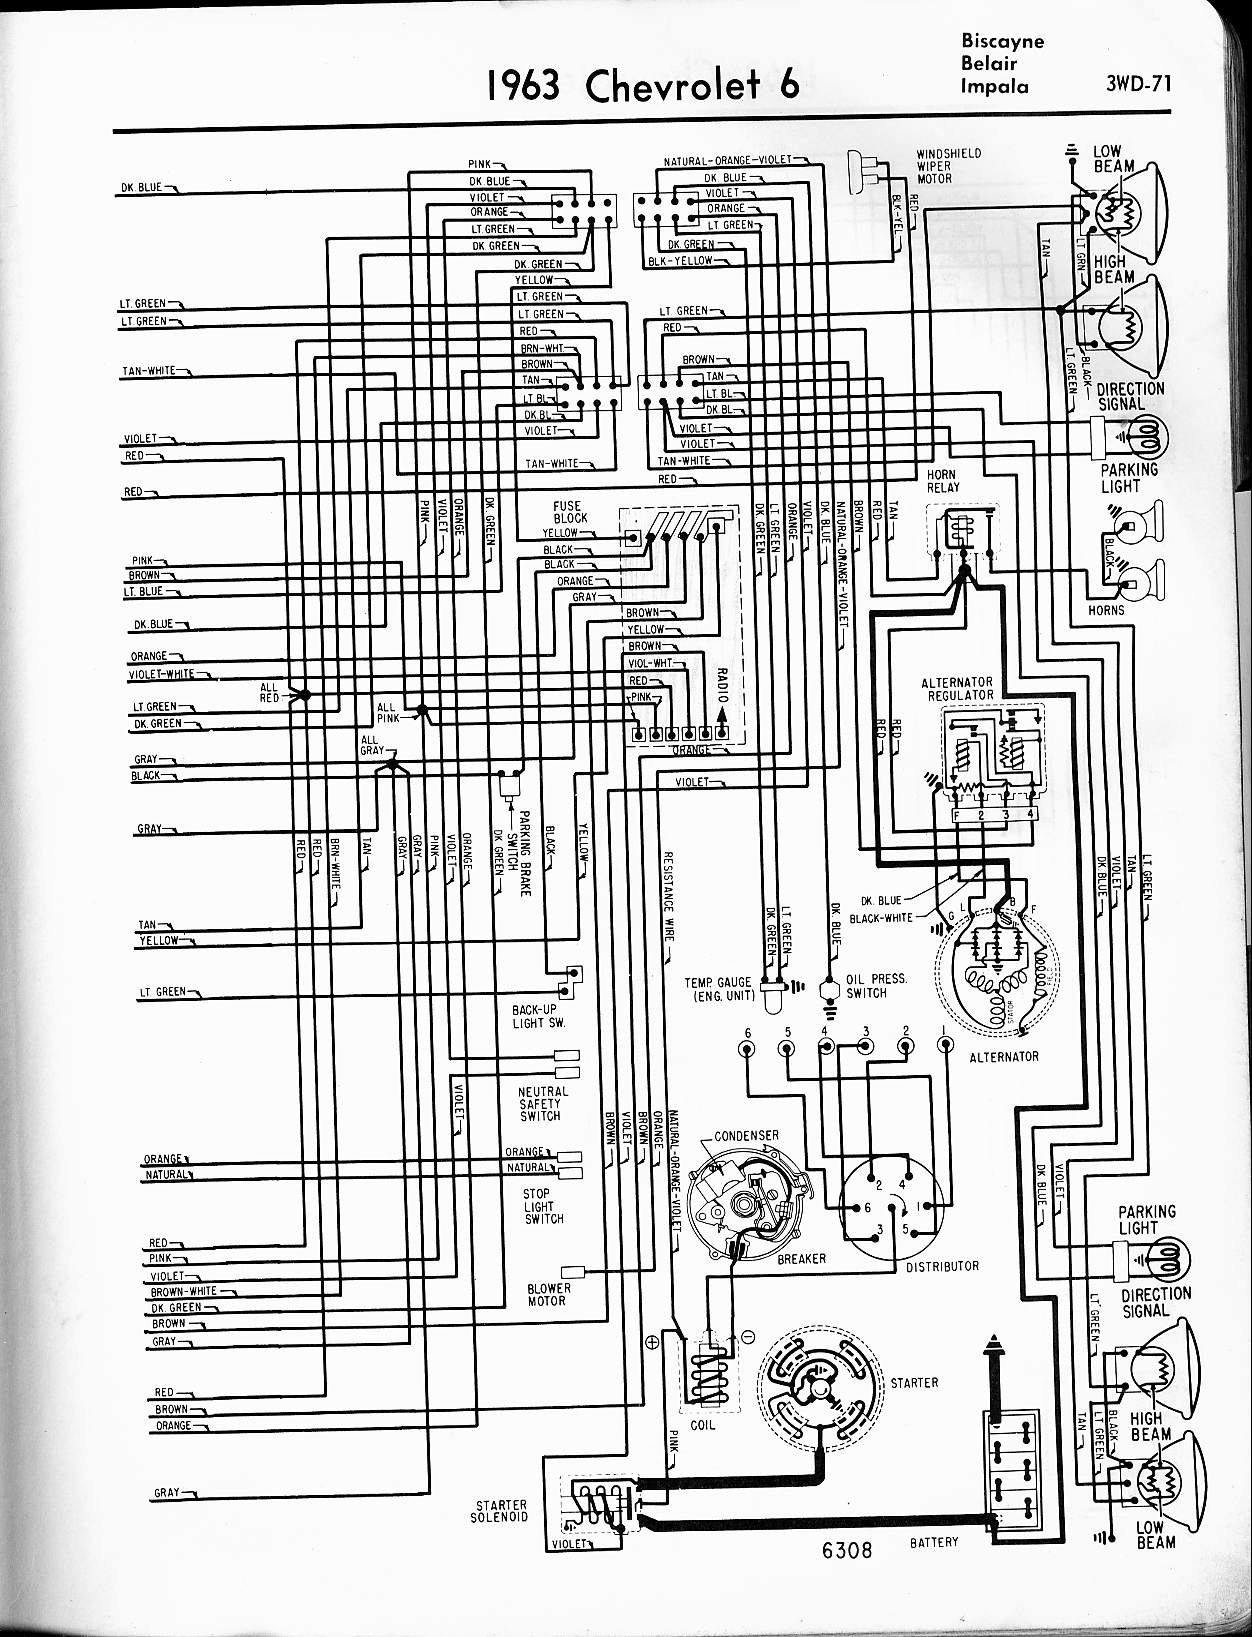 1963 Chevy Wiring Diagram Manual Reprint Impala Ss Bel Air